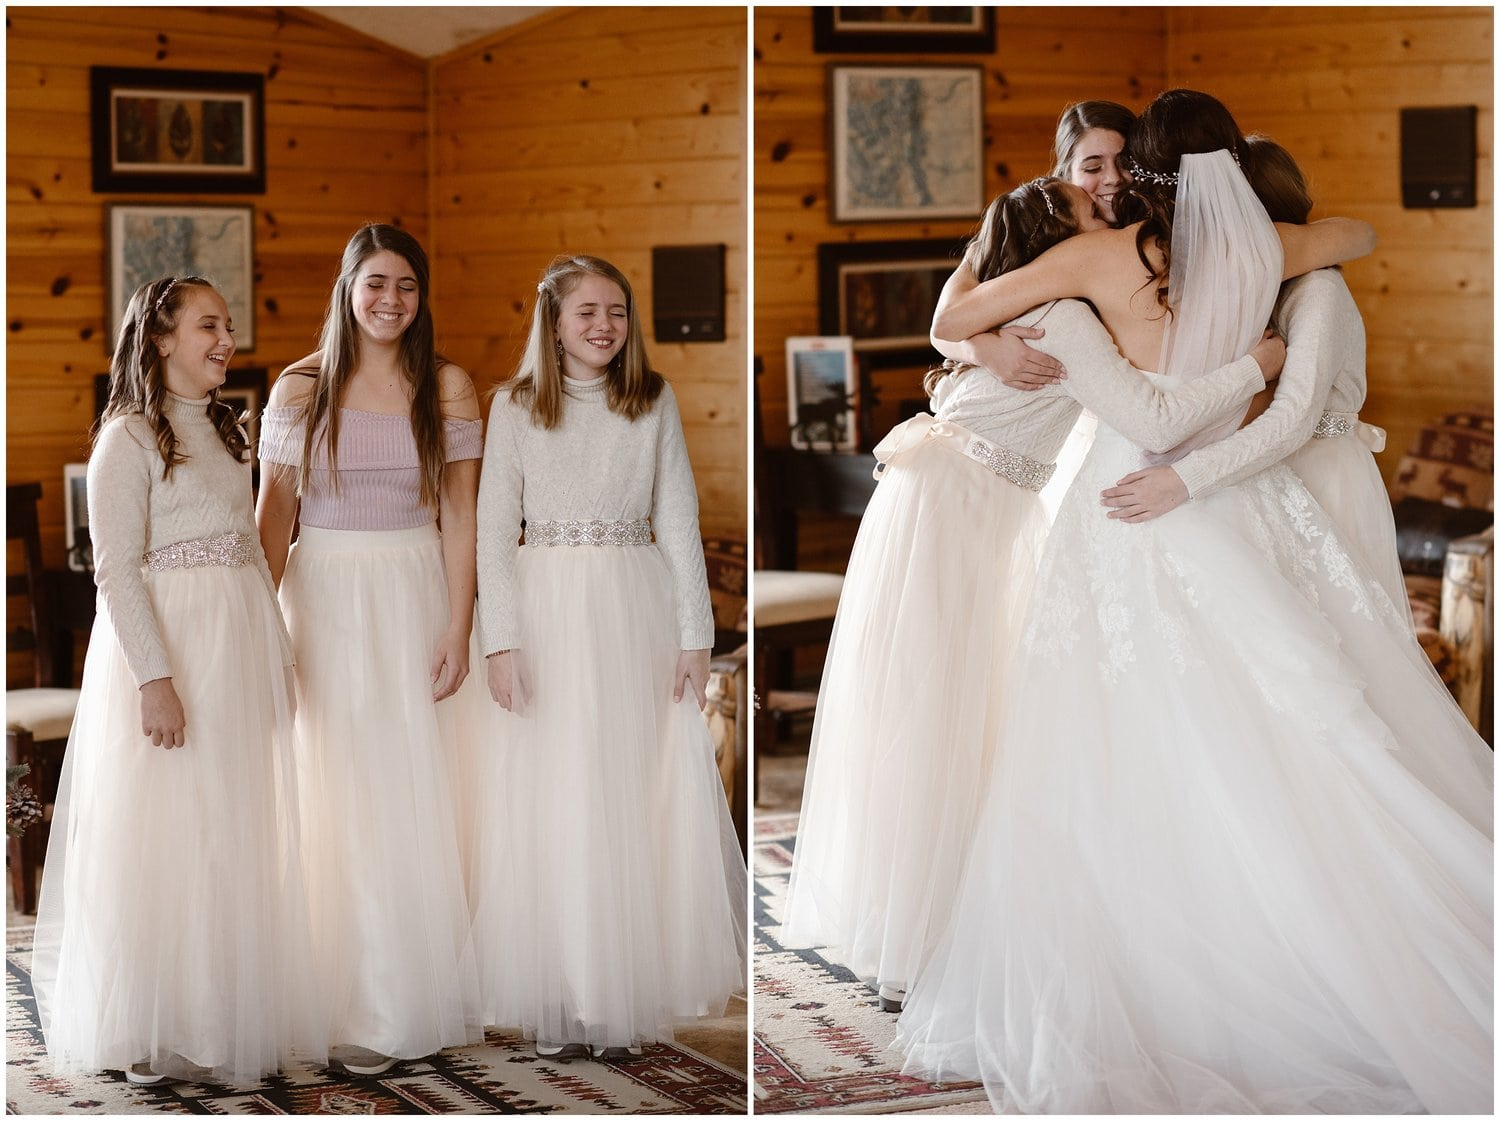 Three girls close their eyes and open them to see their mother in her wedding dress.